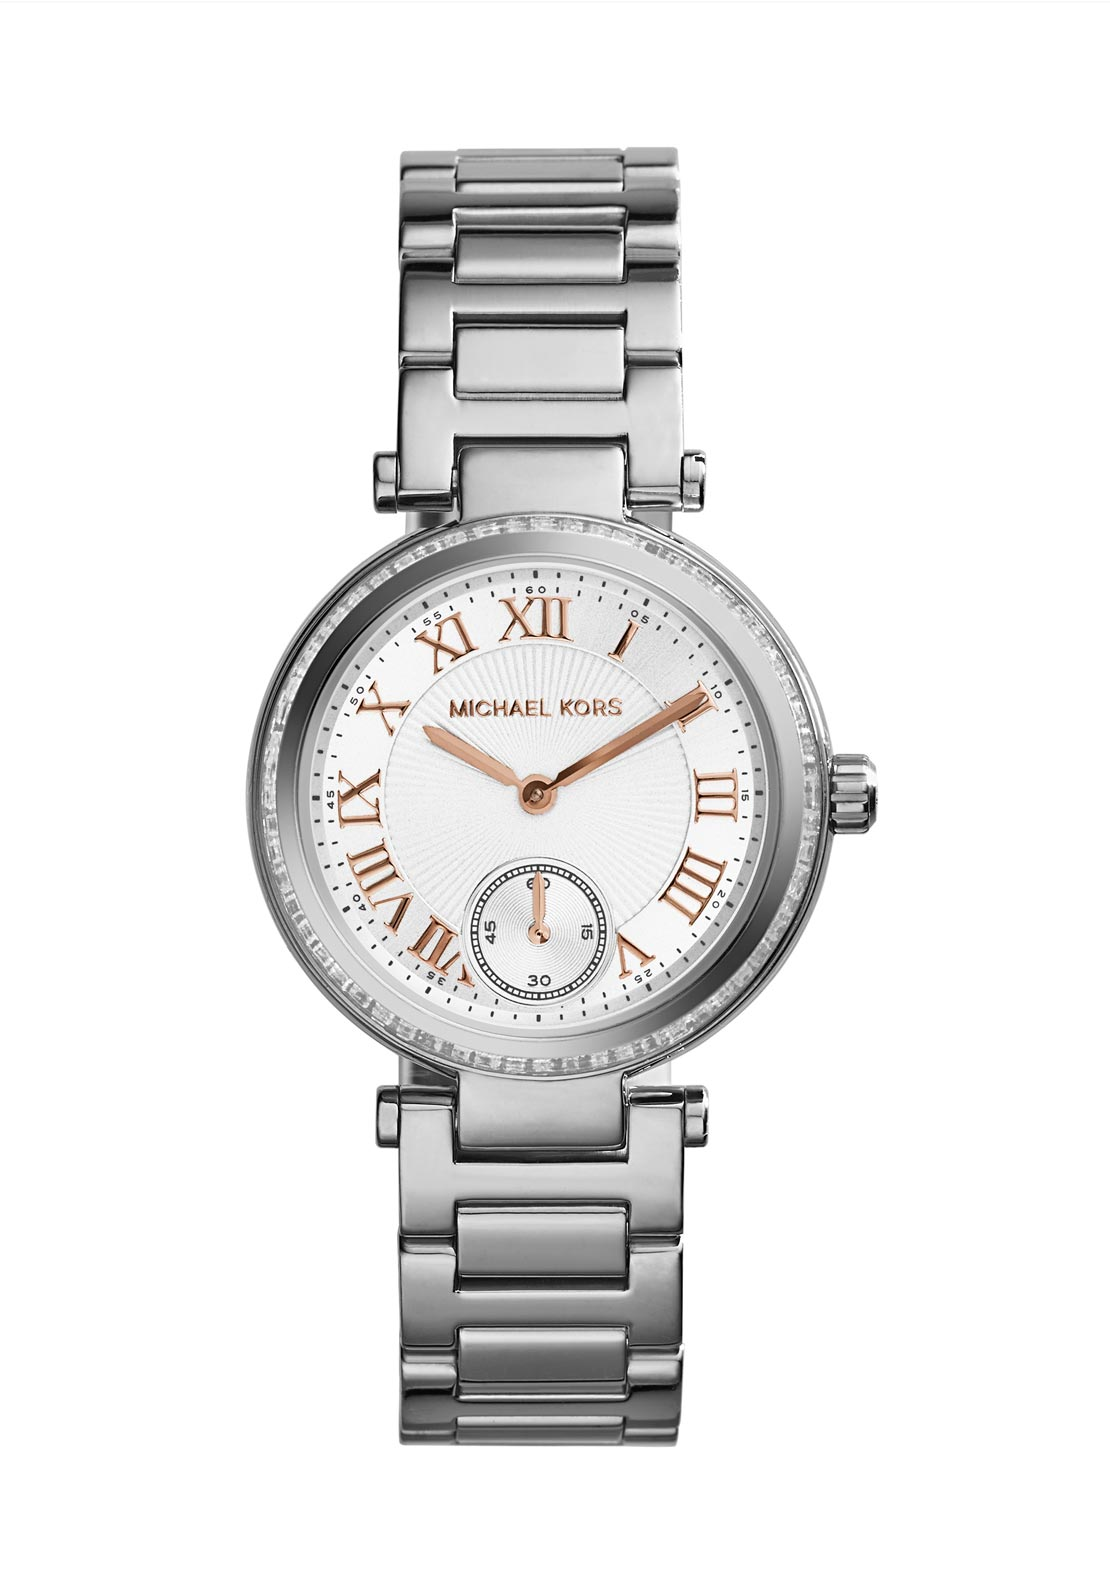 Michael Kors Womens Mini Skylar Watch, Silver